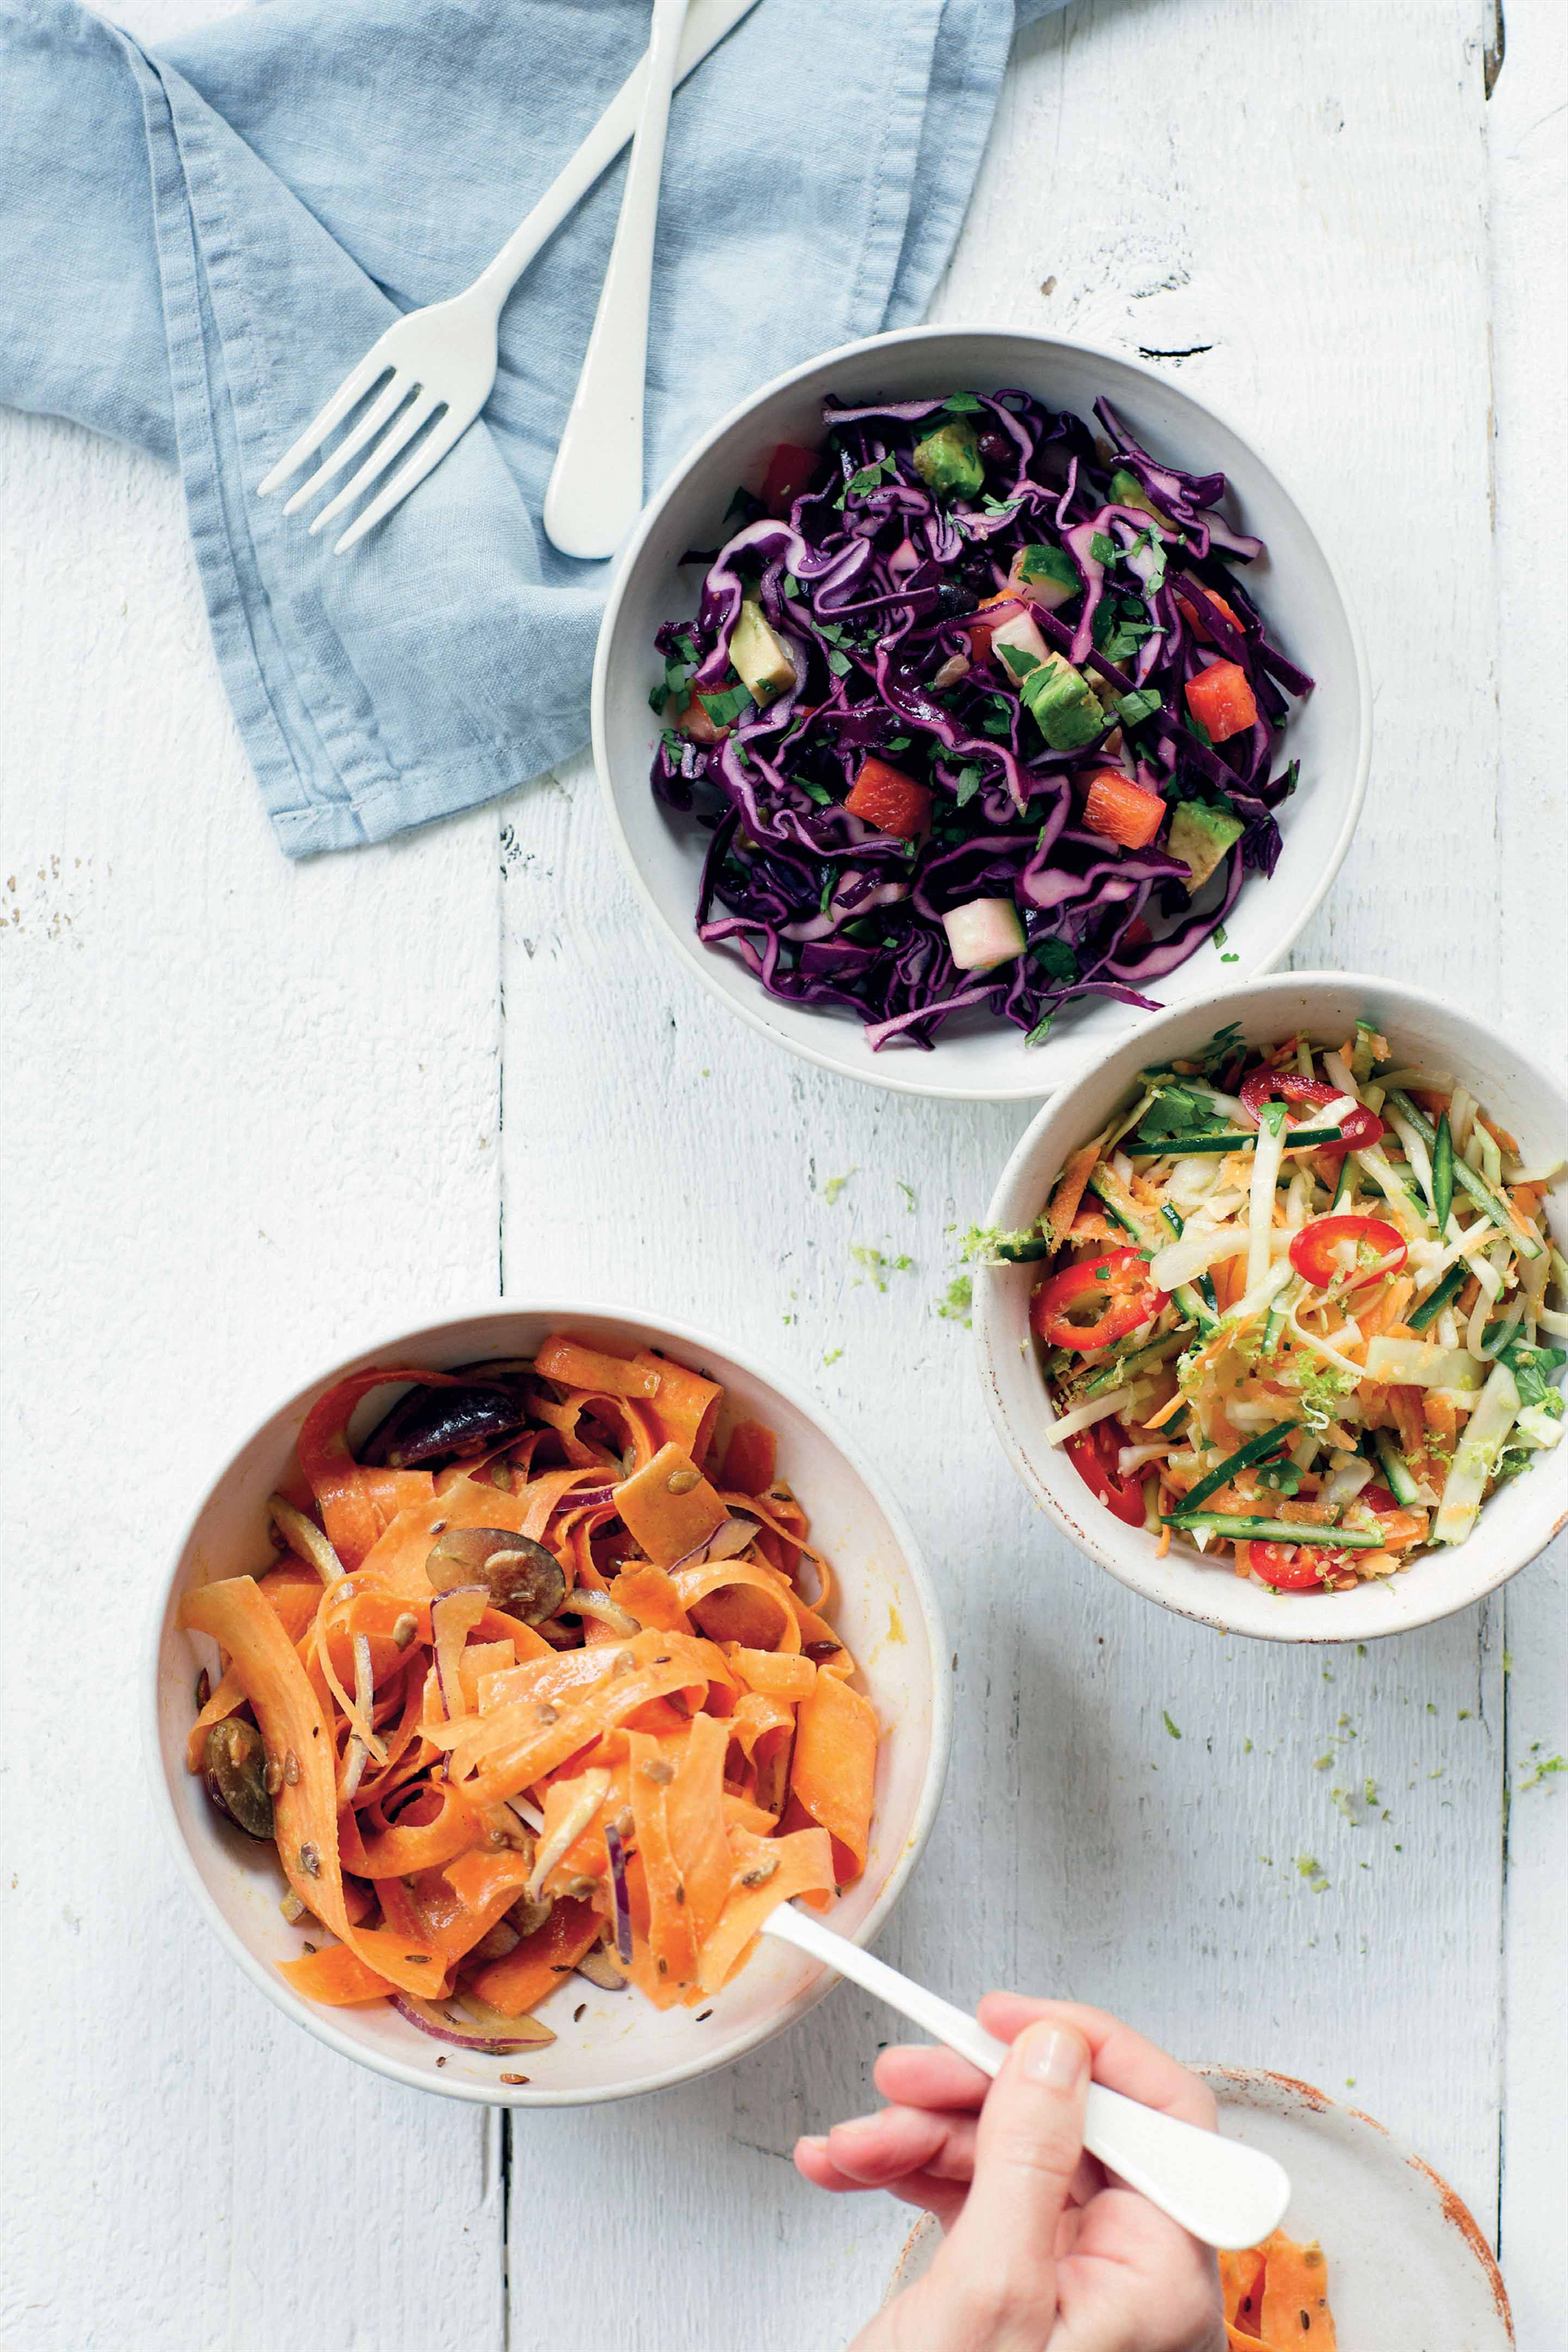 Spicy red cabbage salad